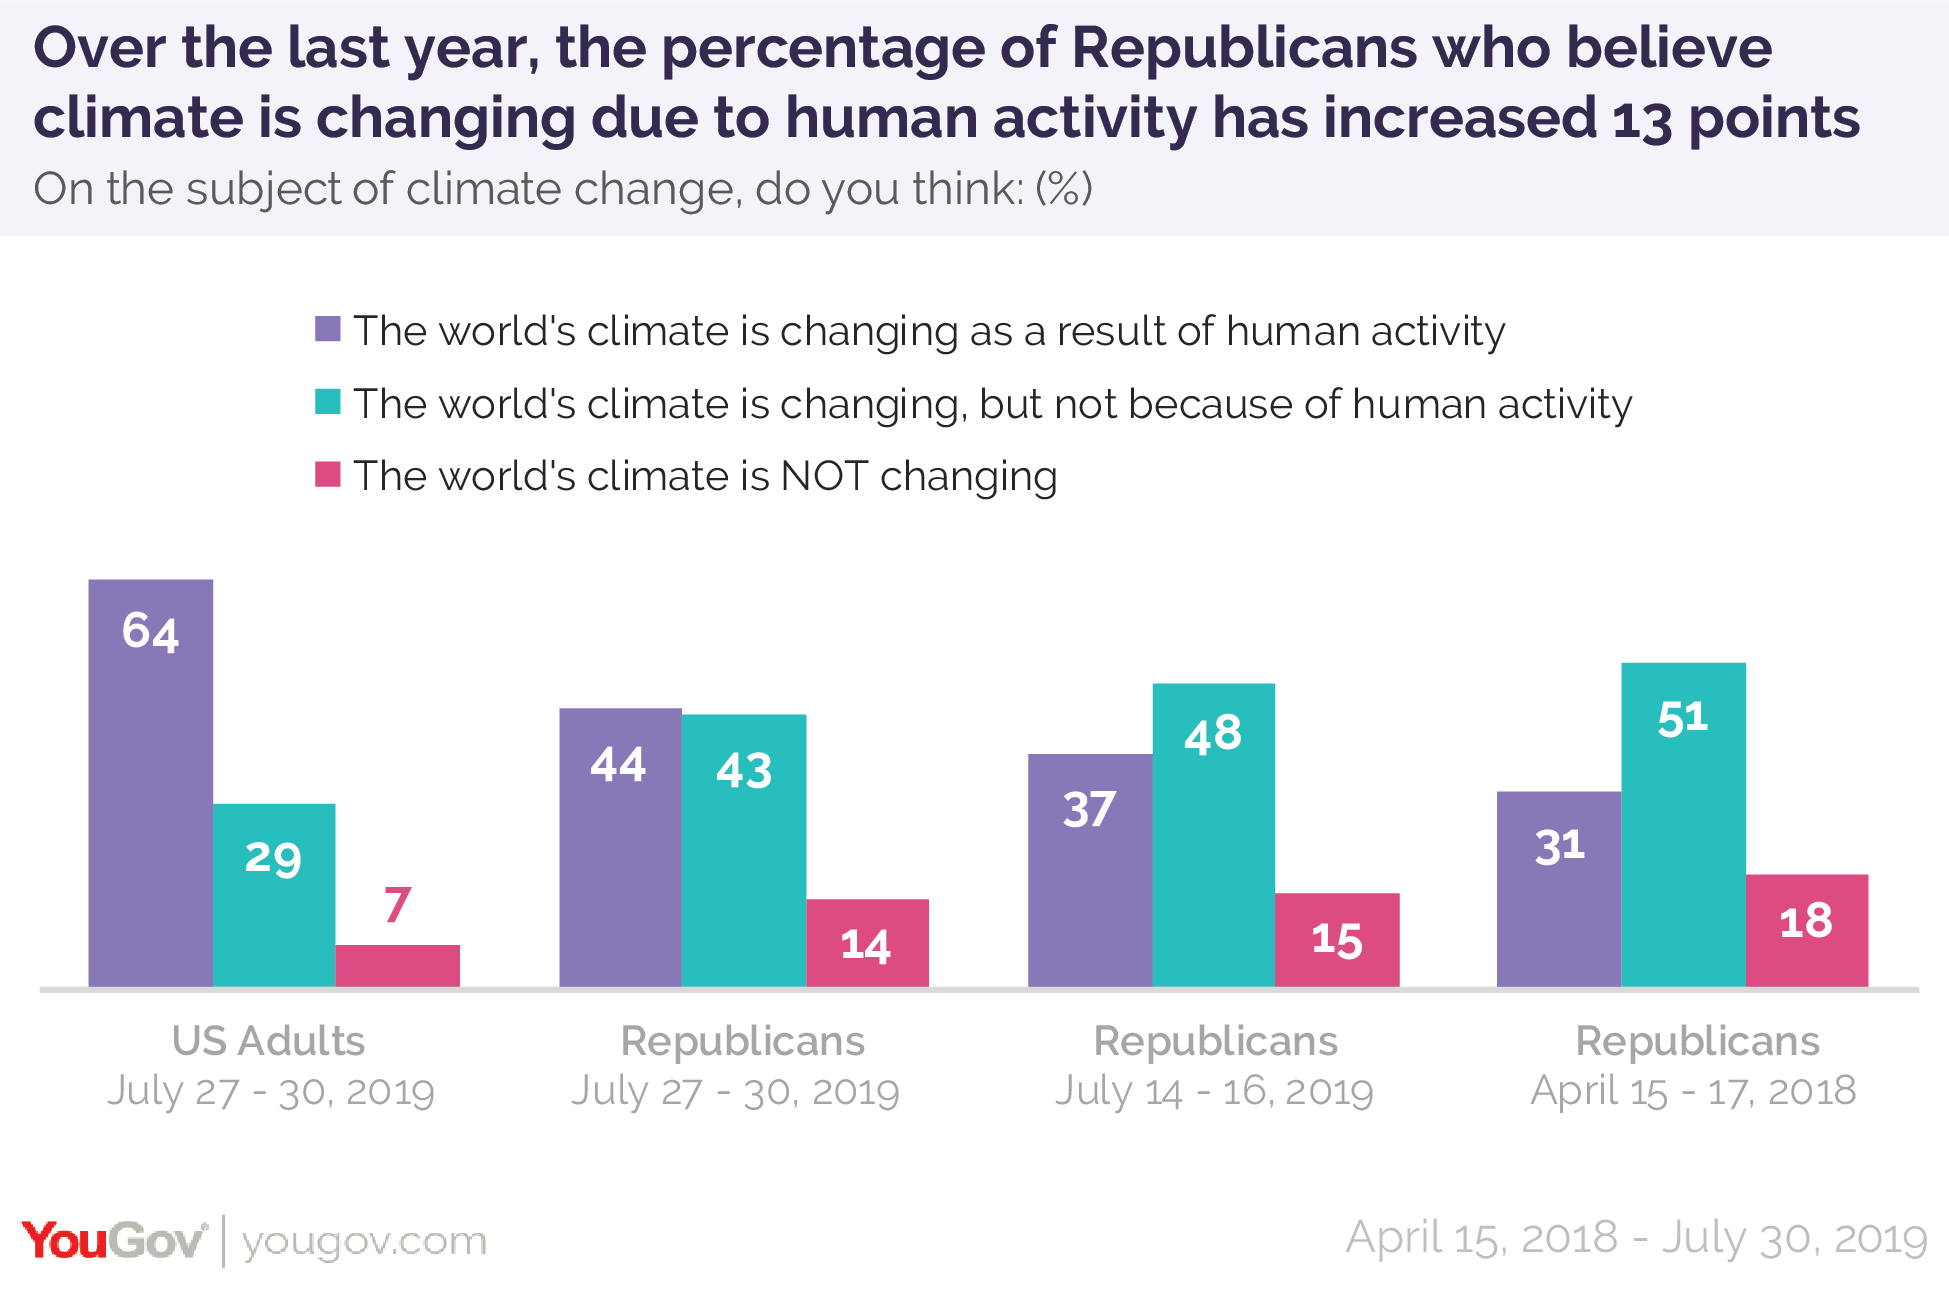 Over the last year, the percentage of Republicans who believe the world's climate is changing due to human activity has increased 13 points